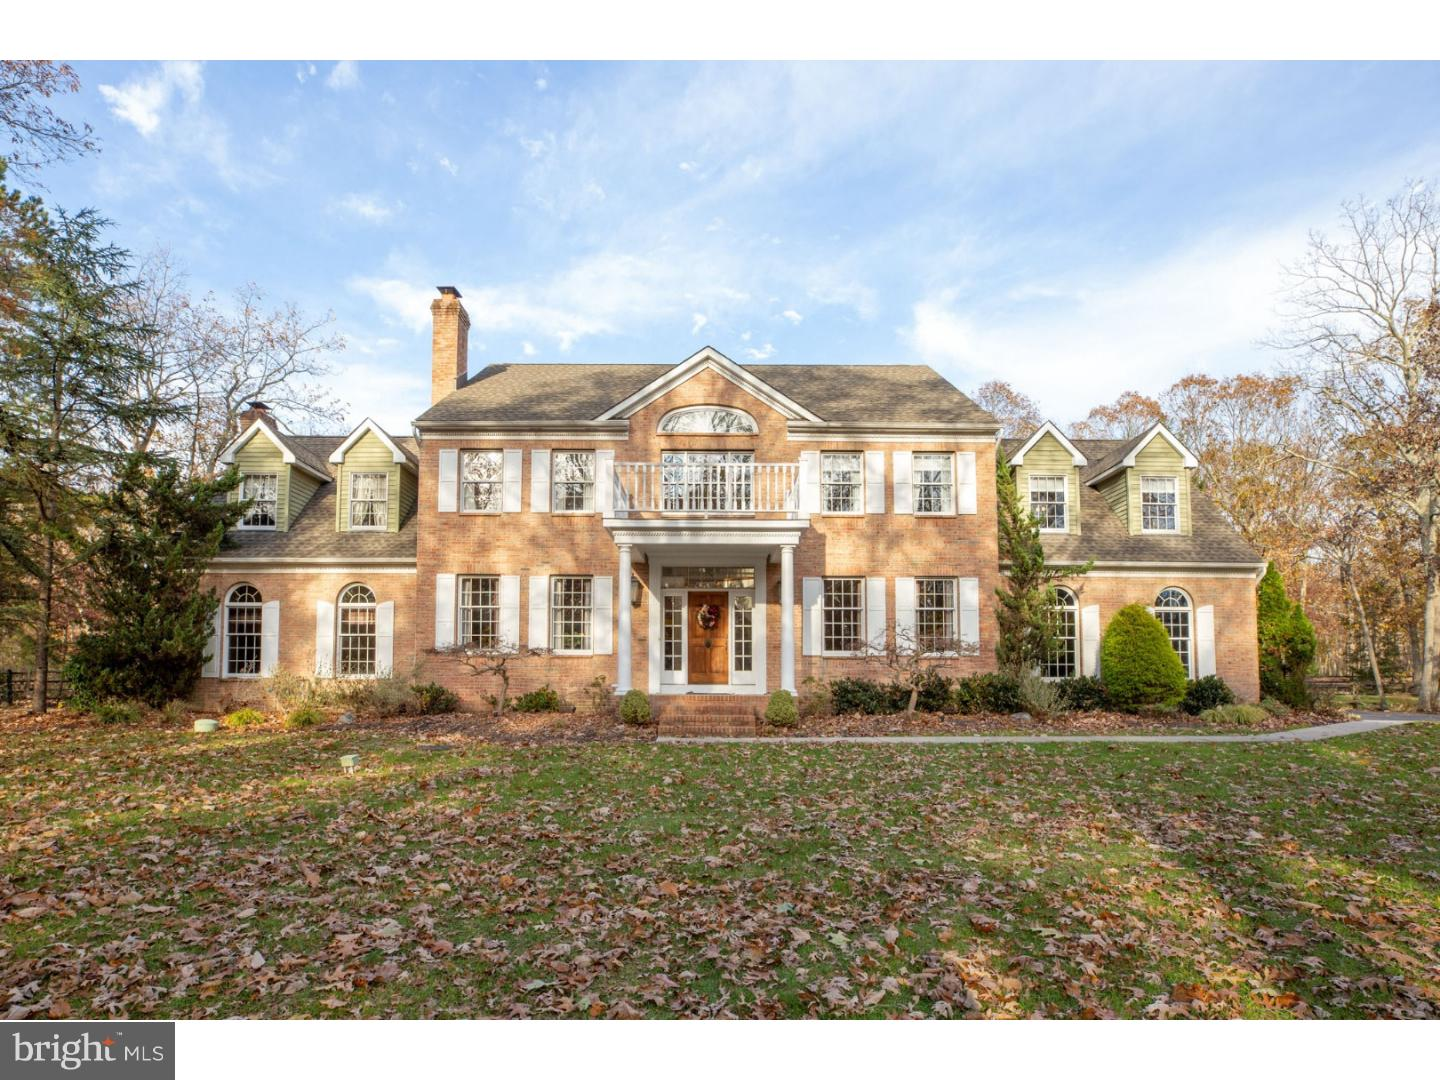 Single Family Home for Sale at 2 HUNTERS Lane Tabernacle, New Jersey 08088 United StatesMunicipality: Tabernacle